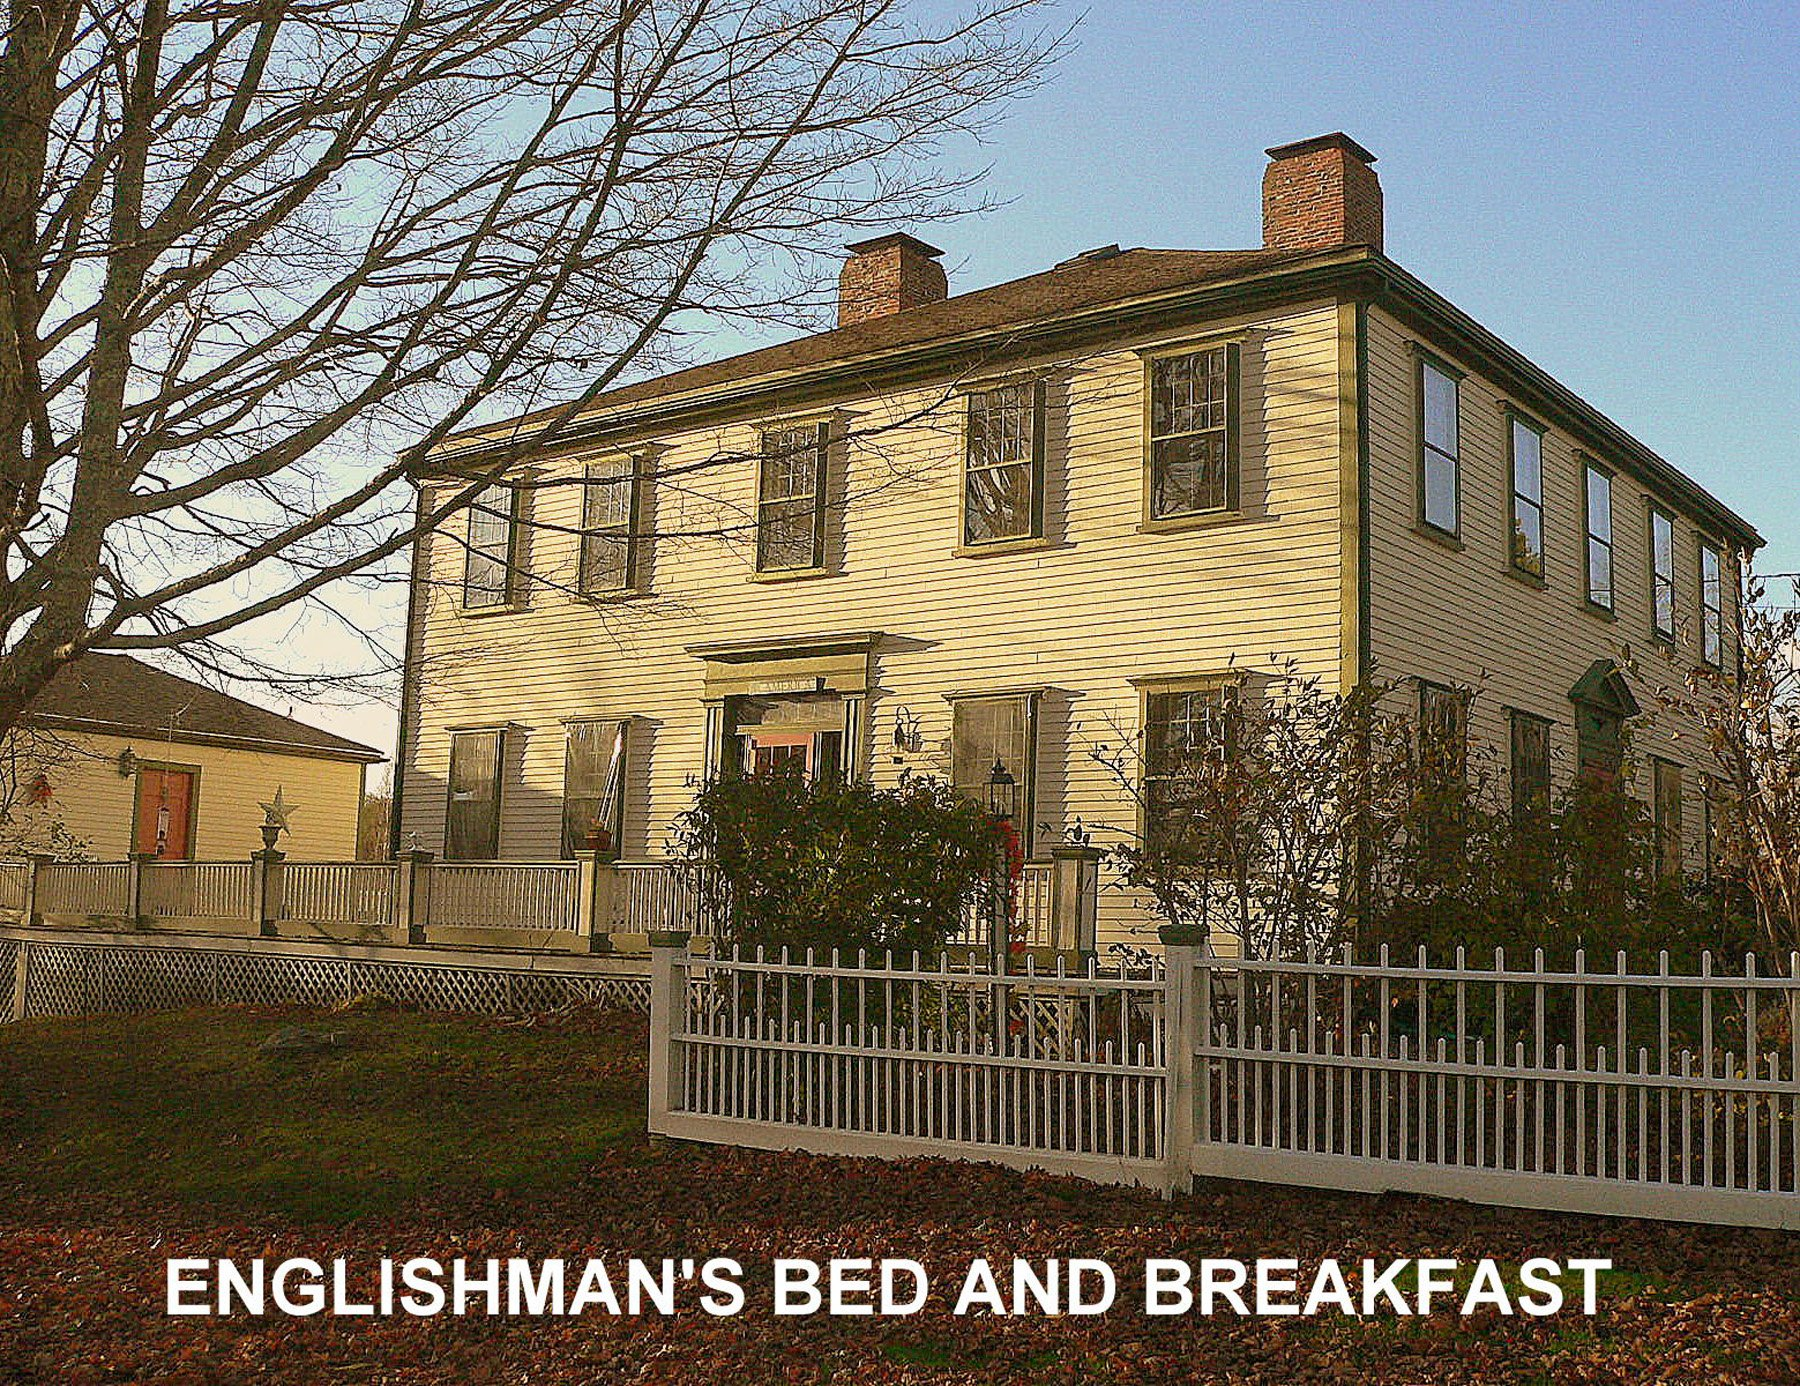 The Englishman's Bed and Breakfast, Cherryfield Carriage house visible on left